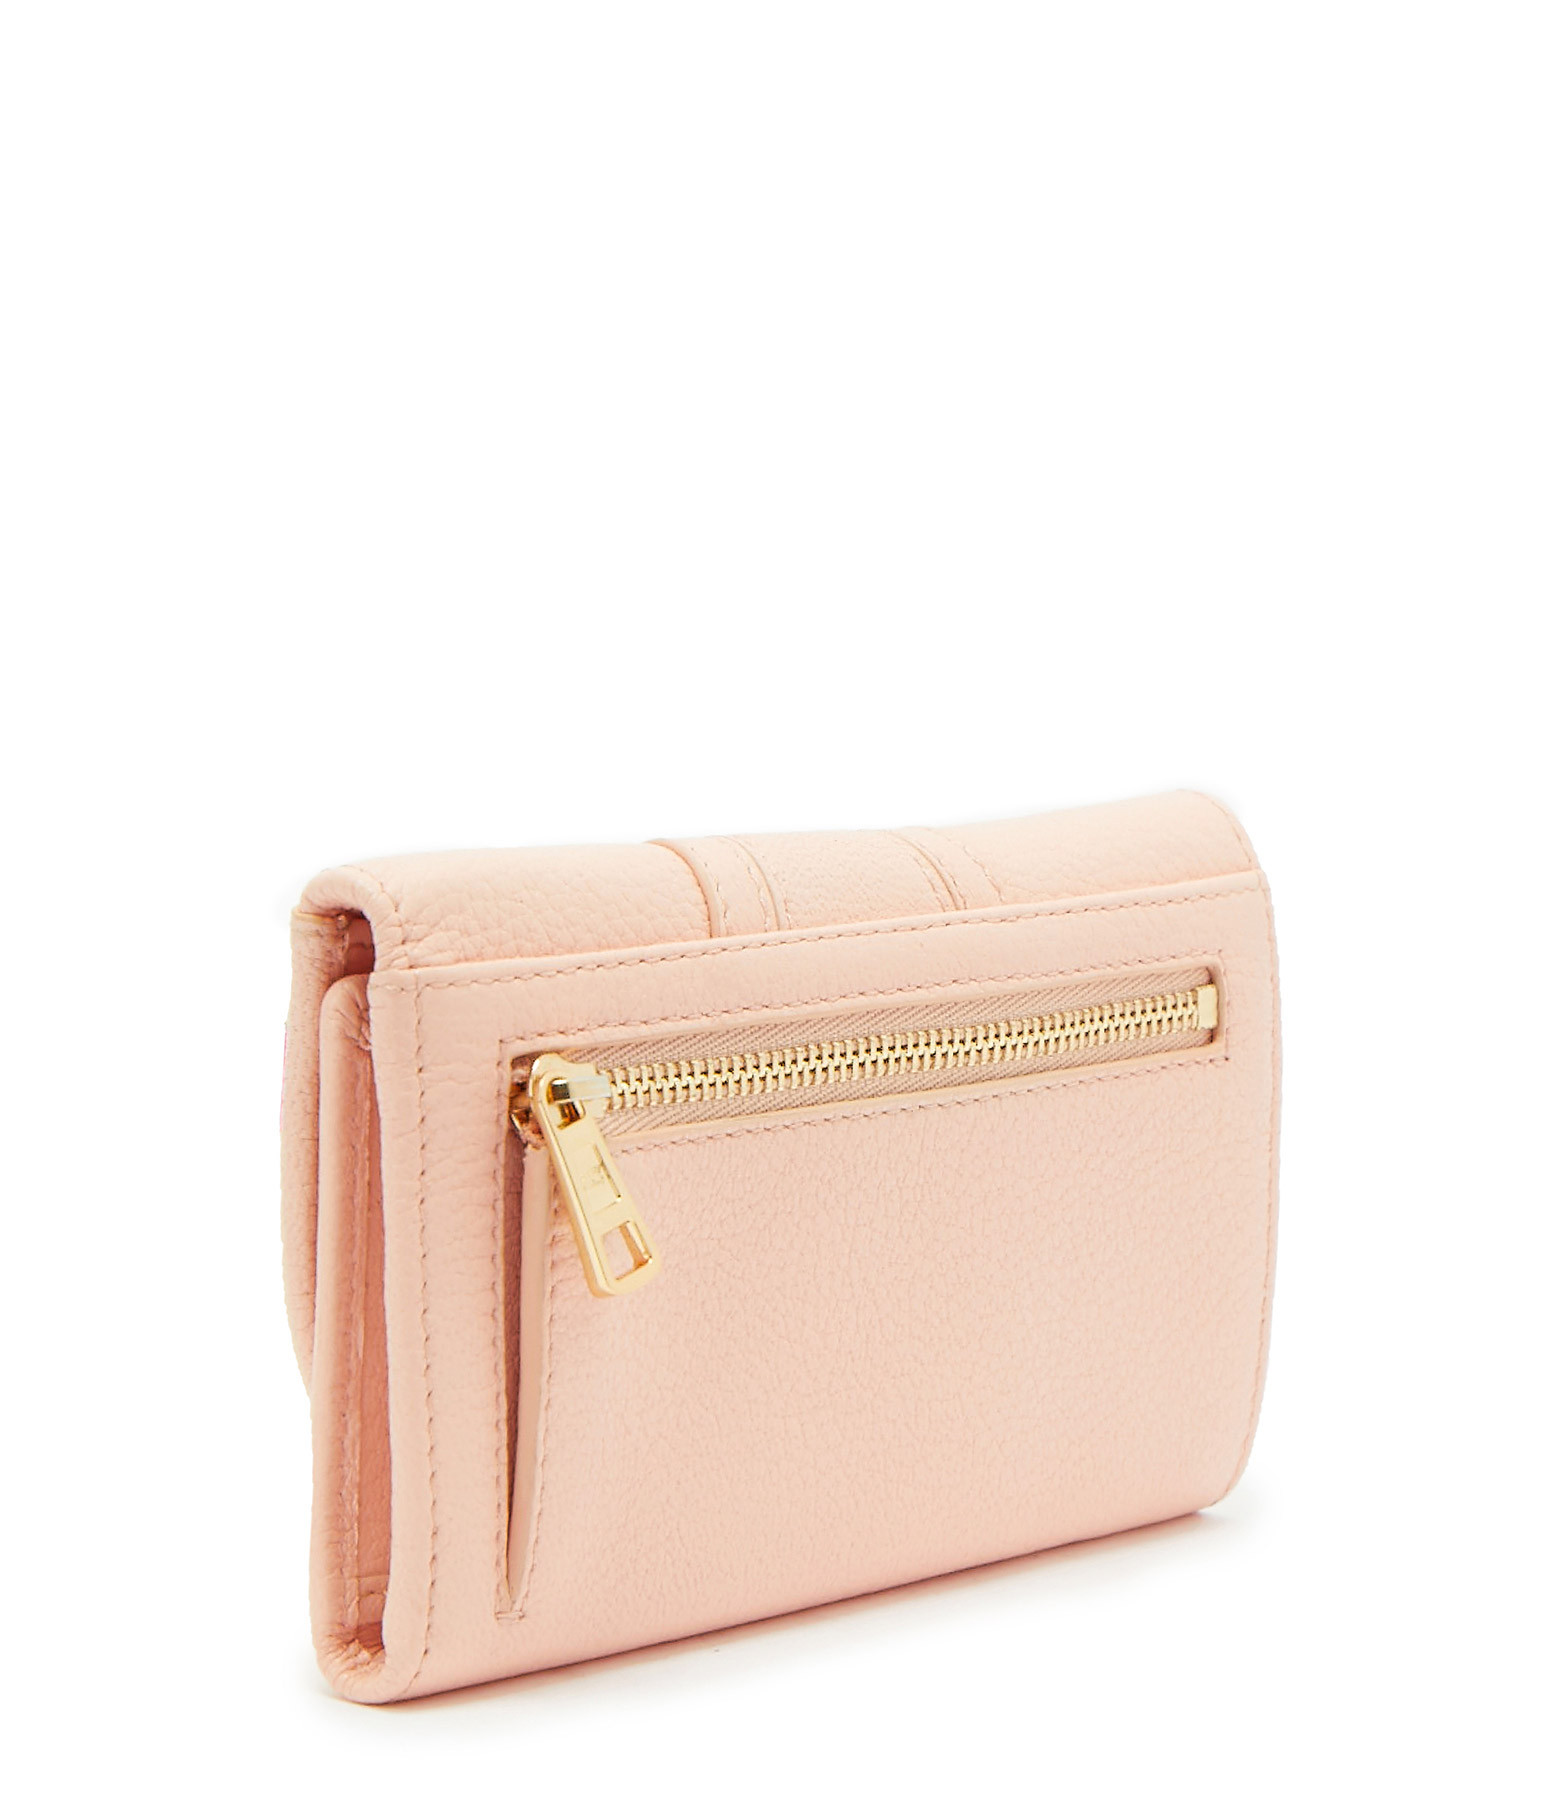 SEE BY CHLOE - Portefeuille Hana Compact Cuir Peachy Pink